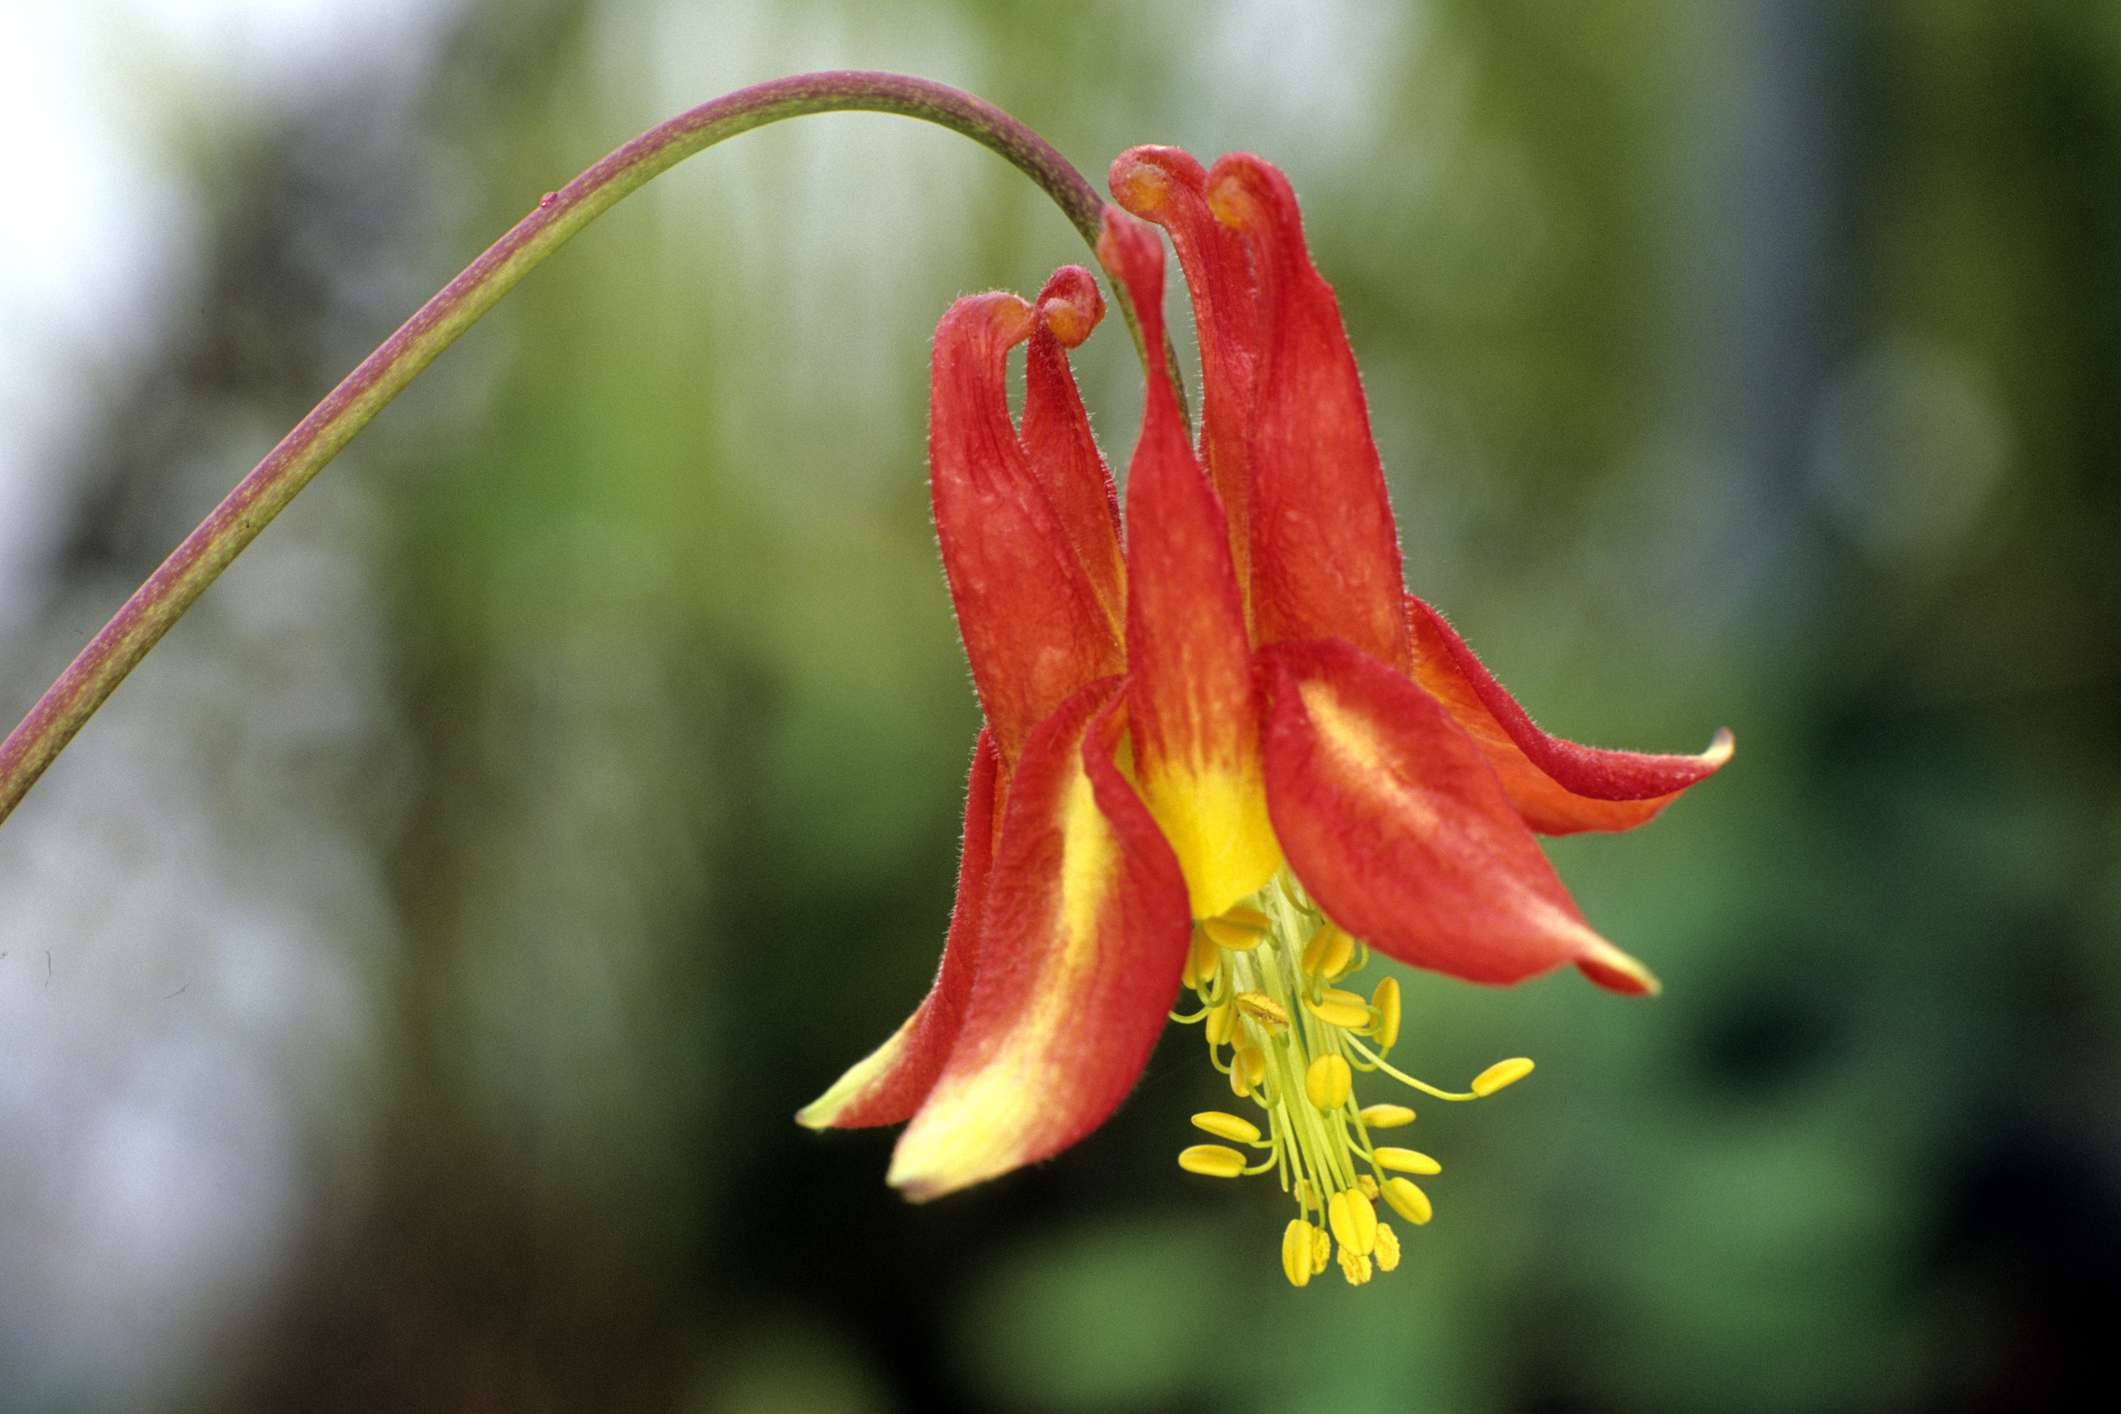 Red columbine (Aquilegia formosa) plant in bloom, with yellow stamens.